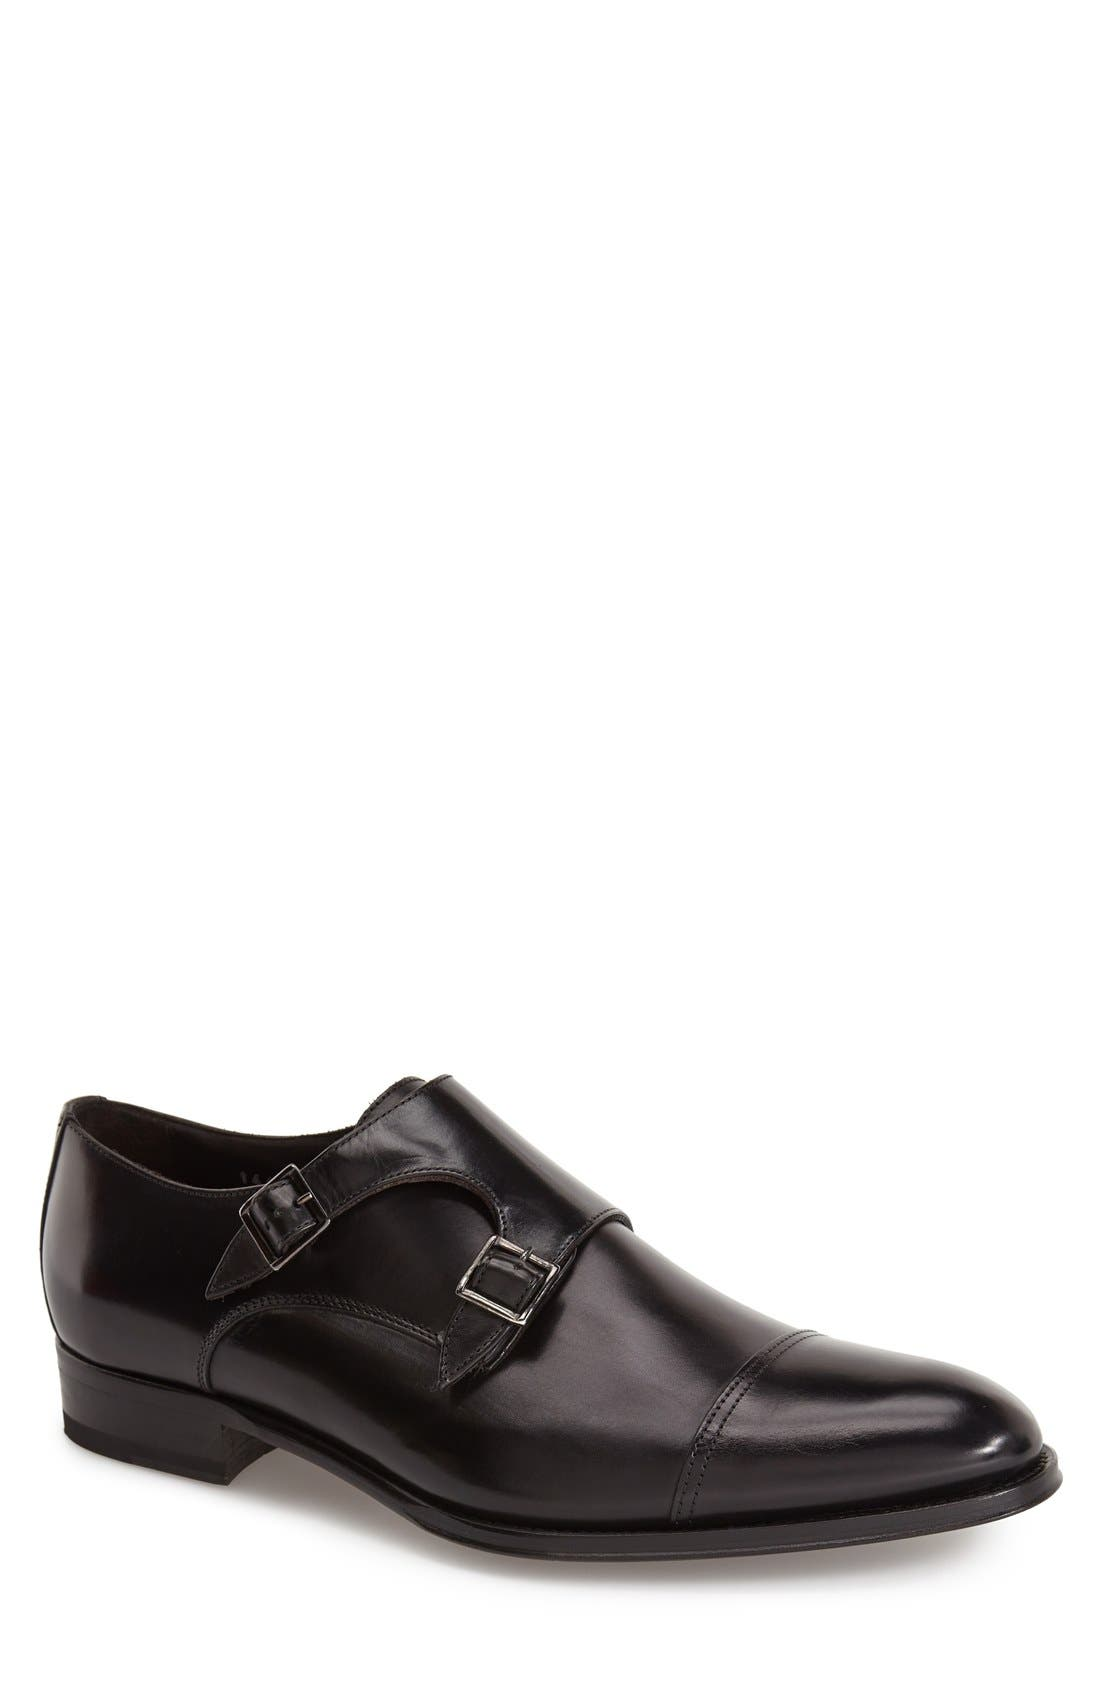 Alternate Image 1 Selected - To Boot New York 'Medford' Double Monk Strap Shoe (Men)